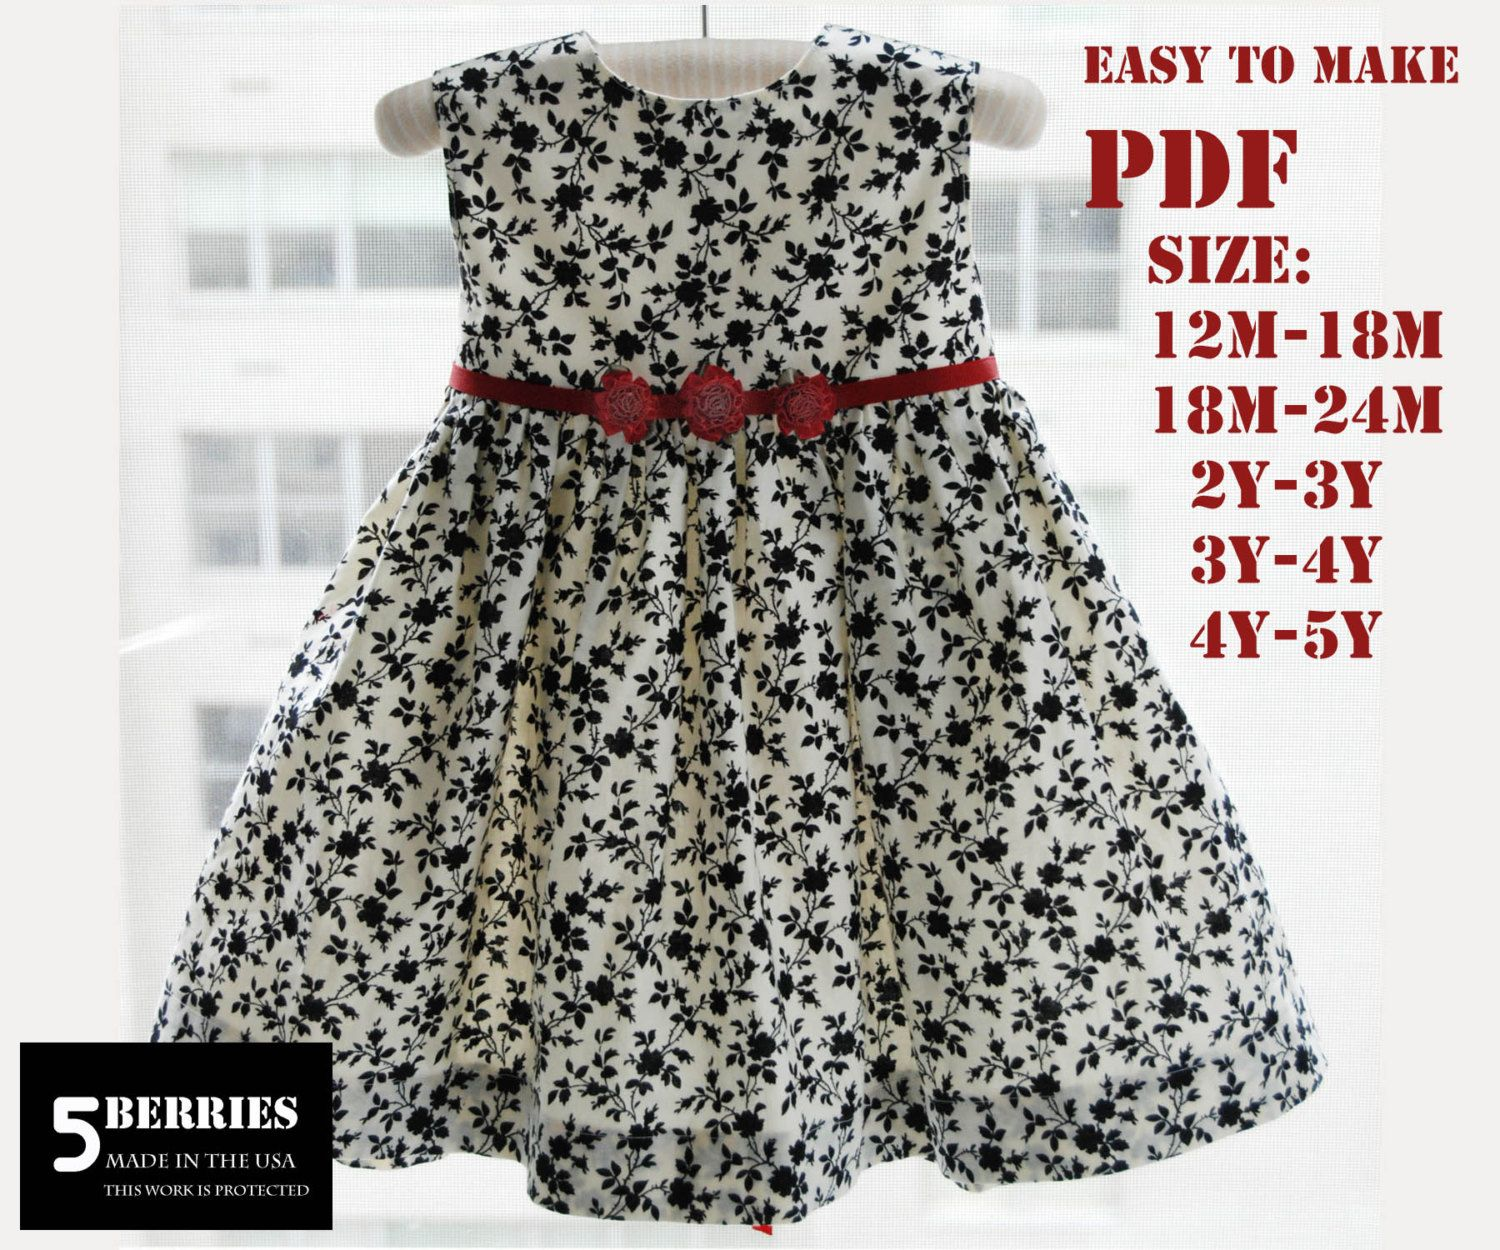 Free Pattern Sunny Day Toddler Dress 2T-4T | Children's Sewing ...